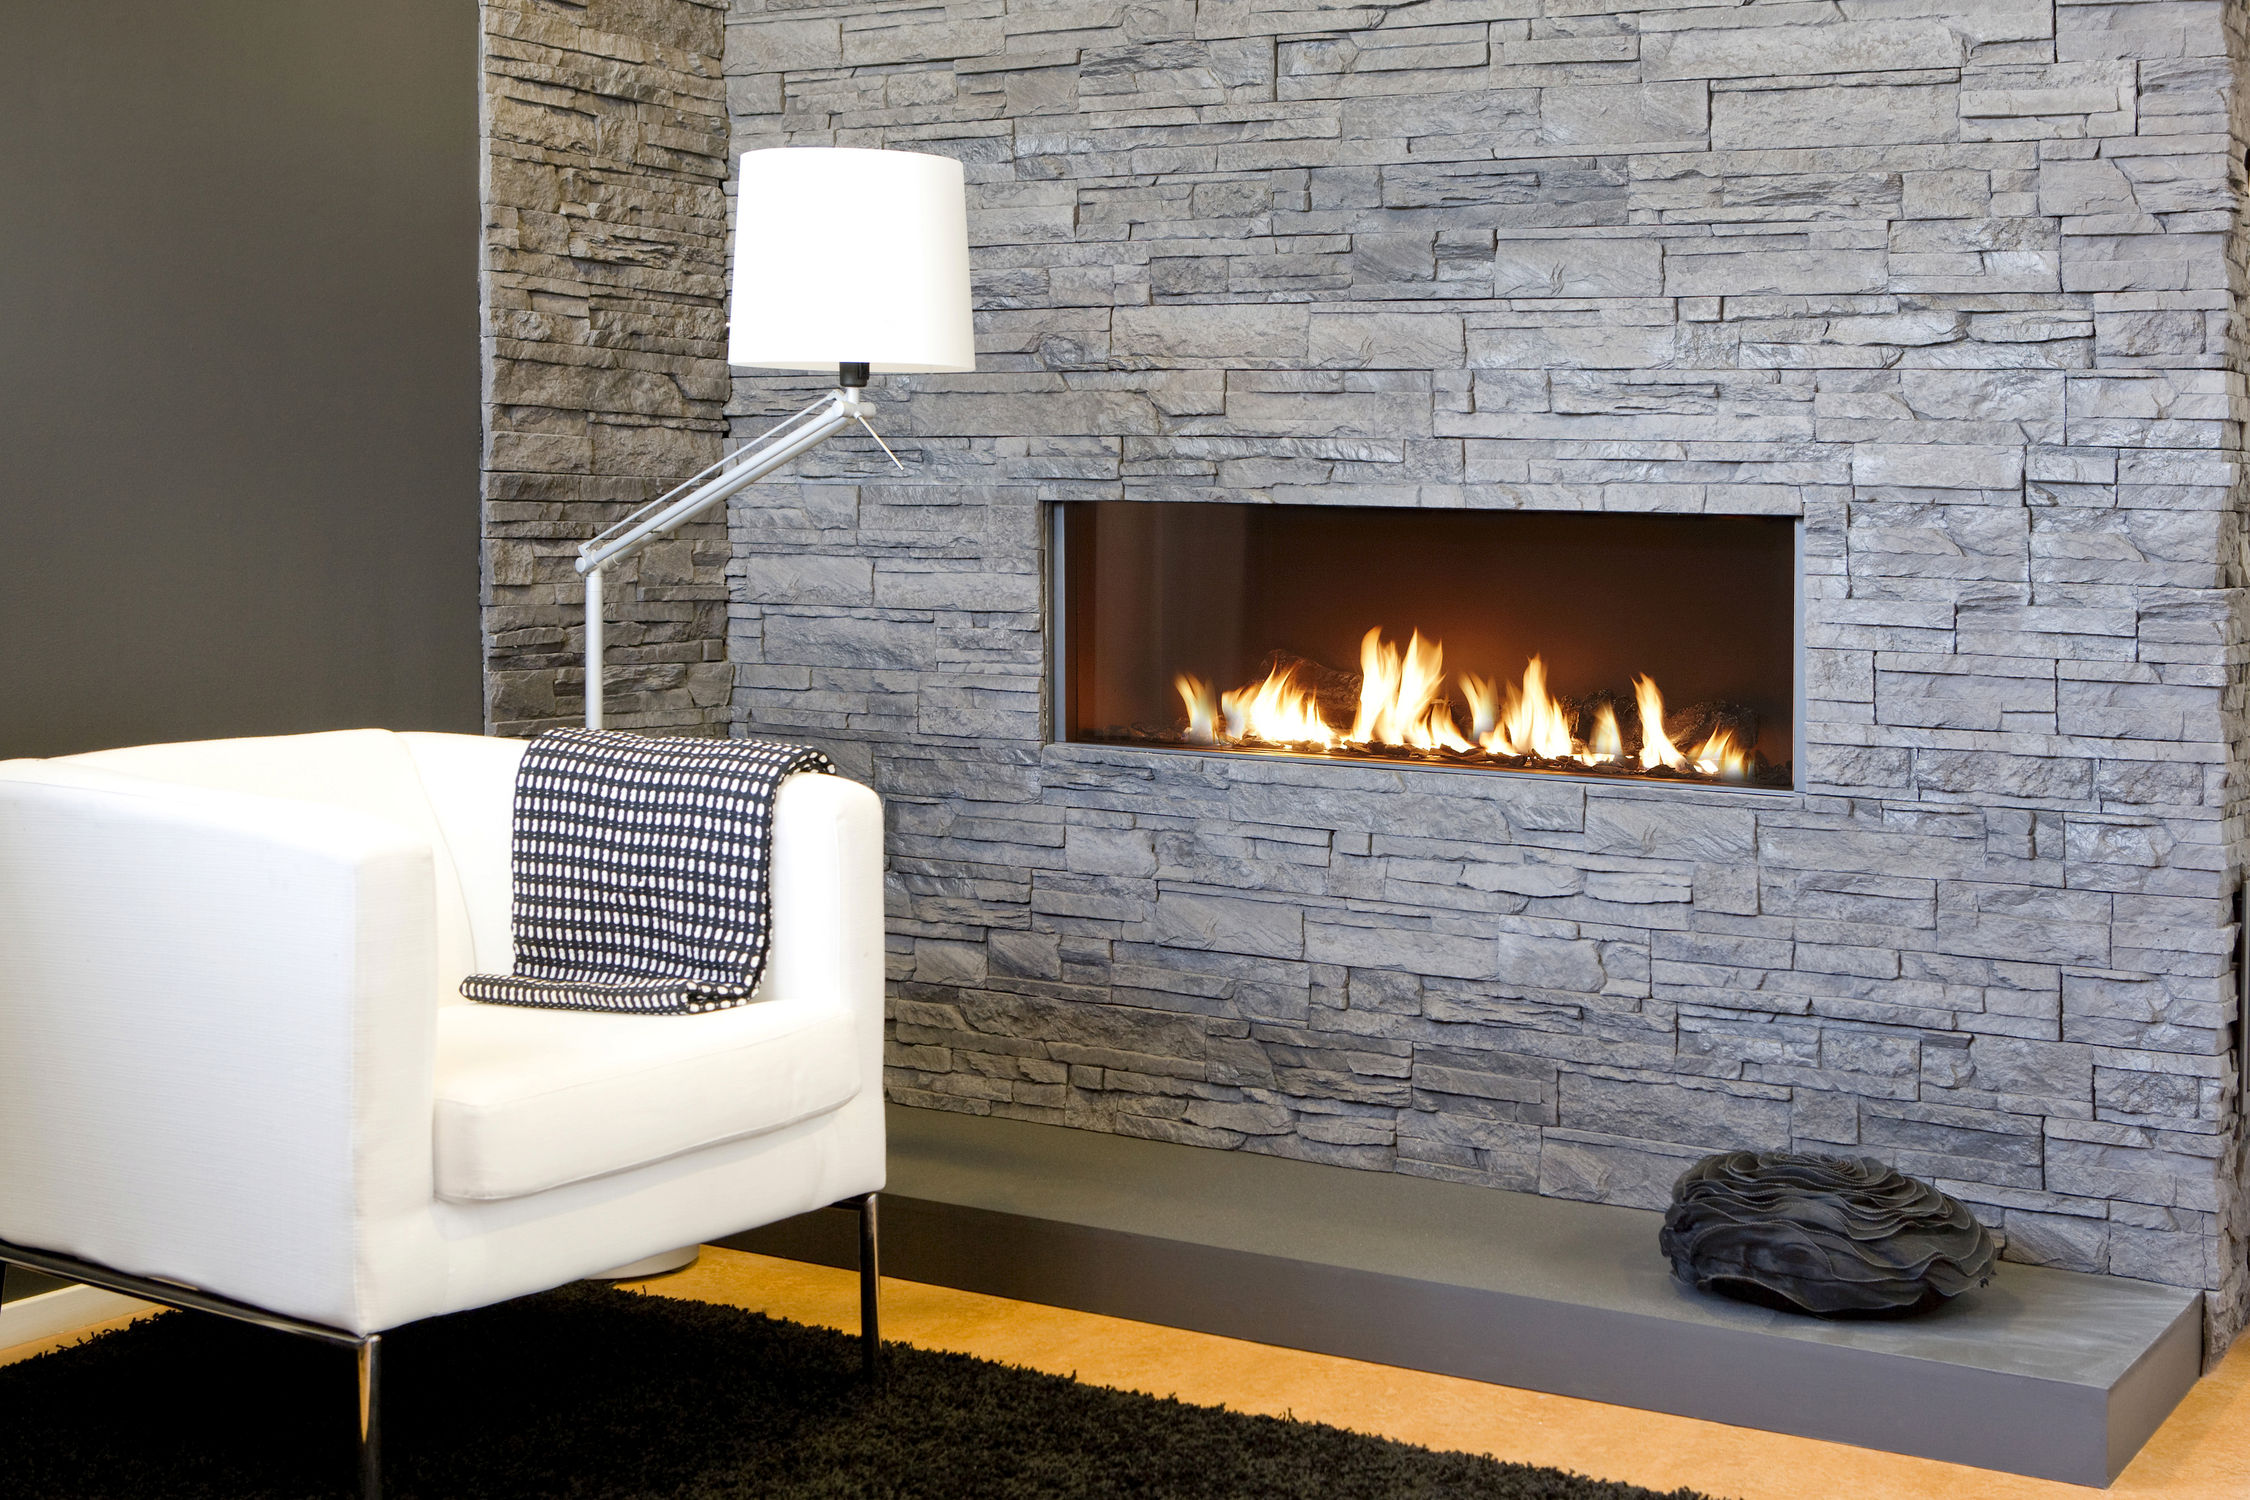 A Built in Electric Fireplace for Your Home | FIREPLACE DESIGN IDEAS